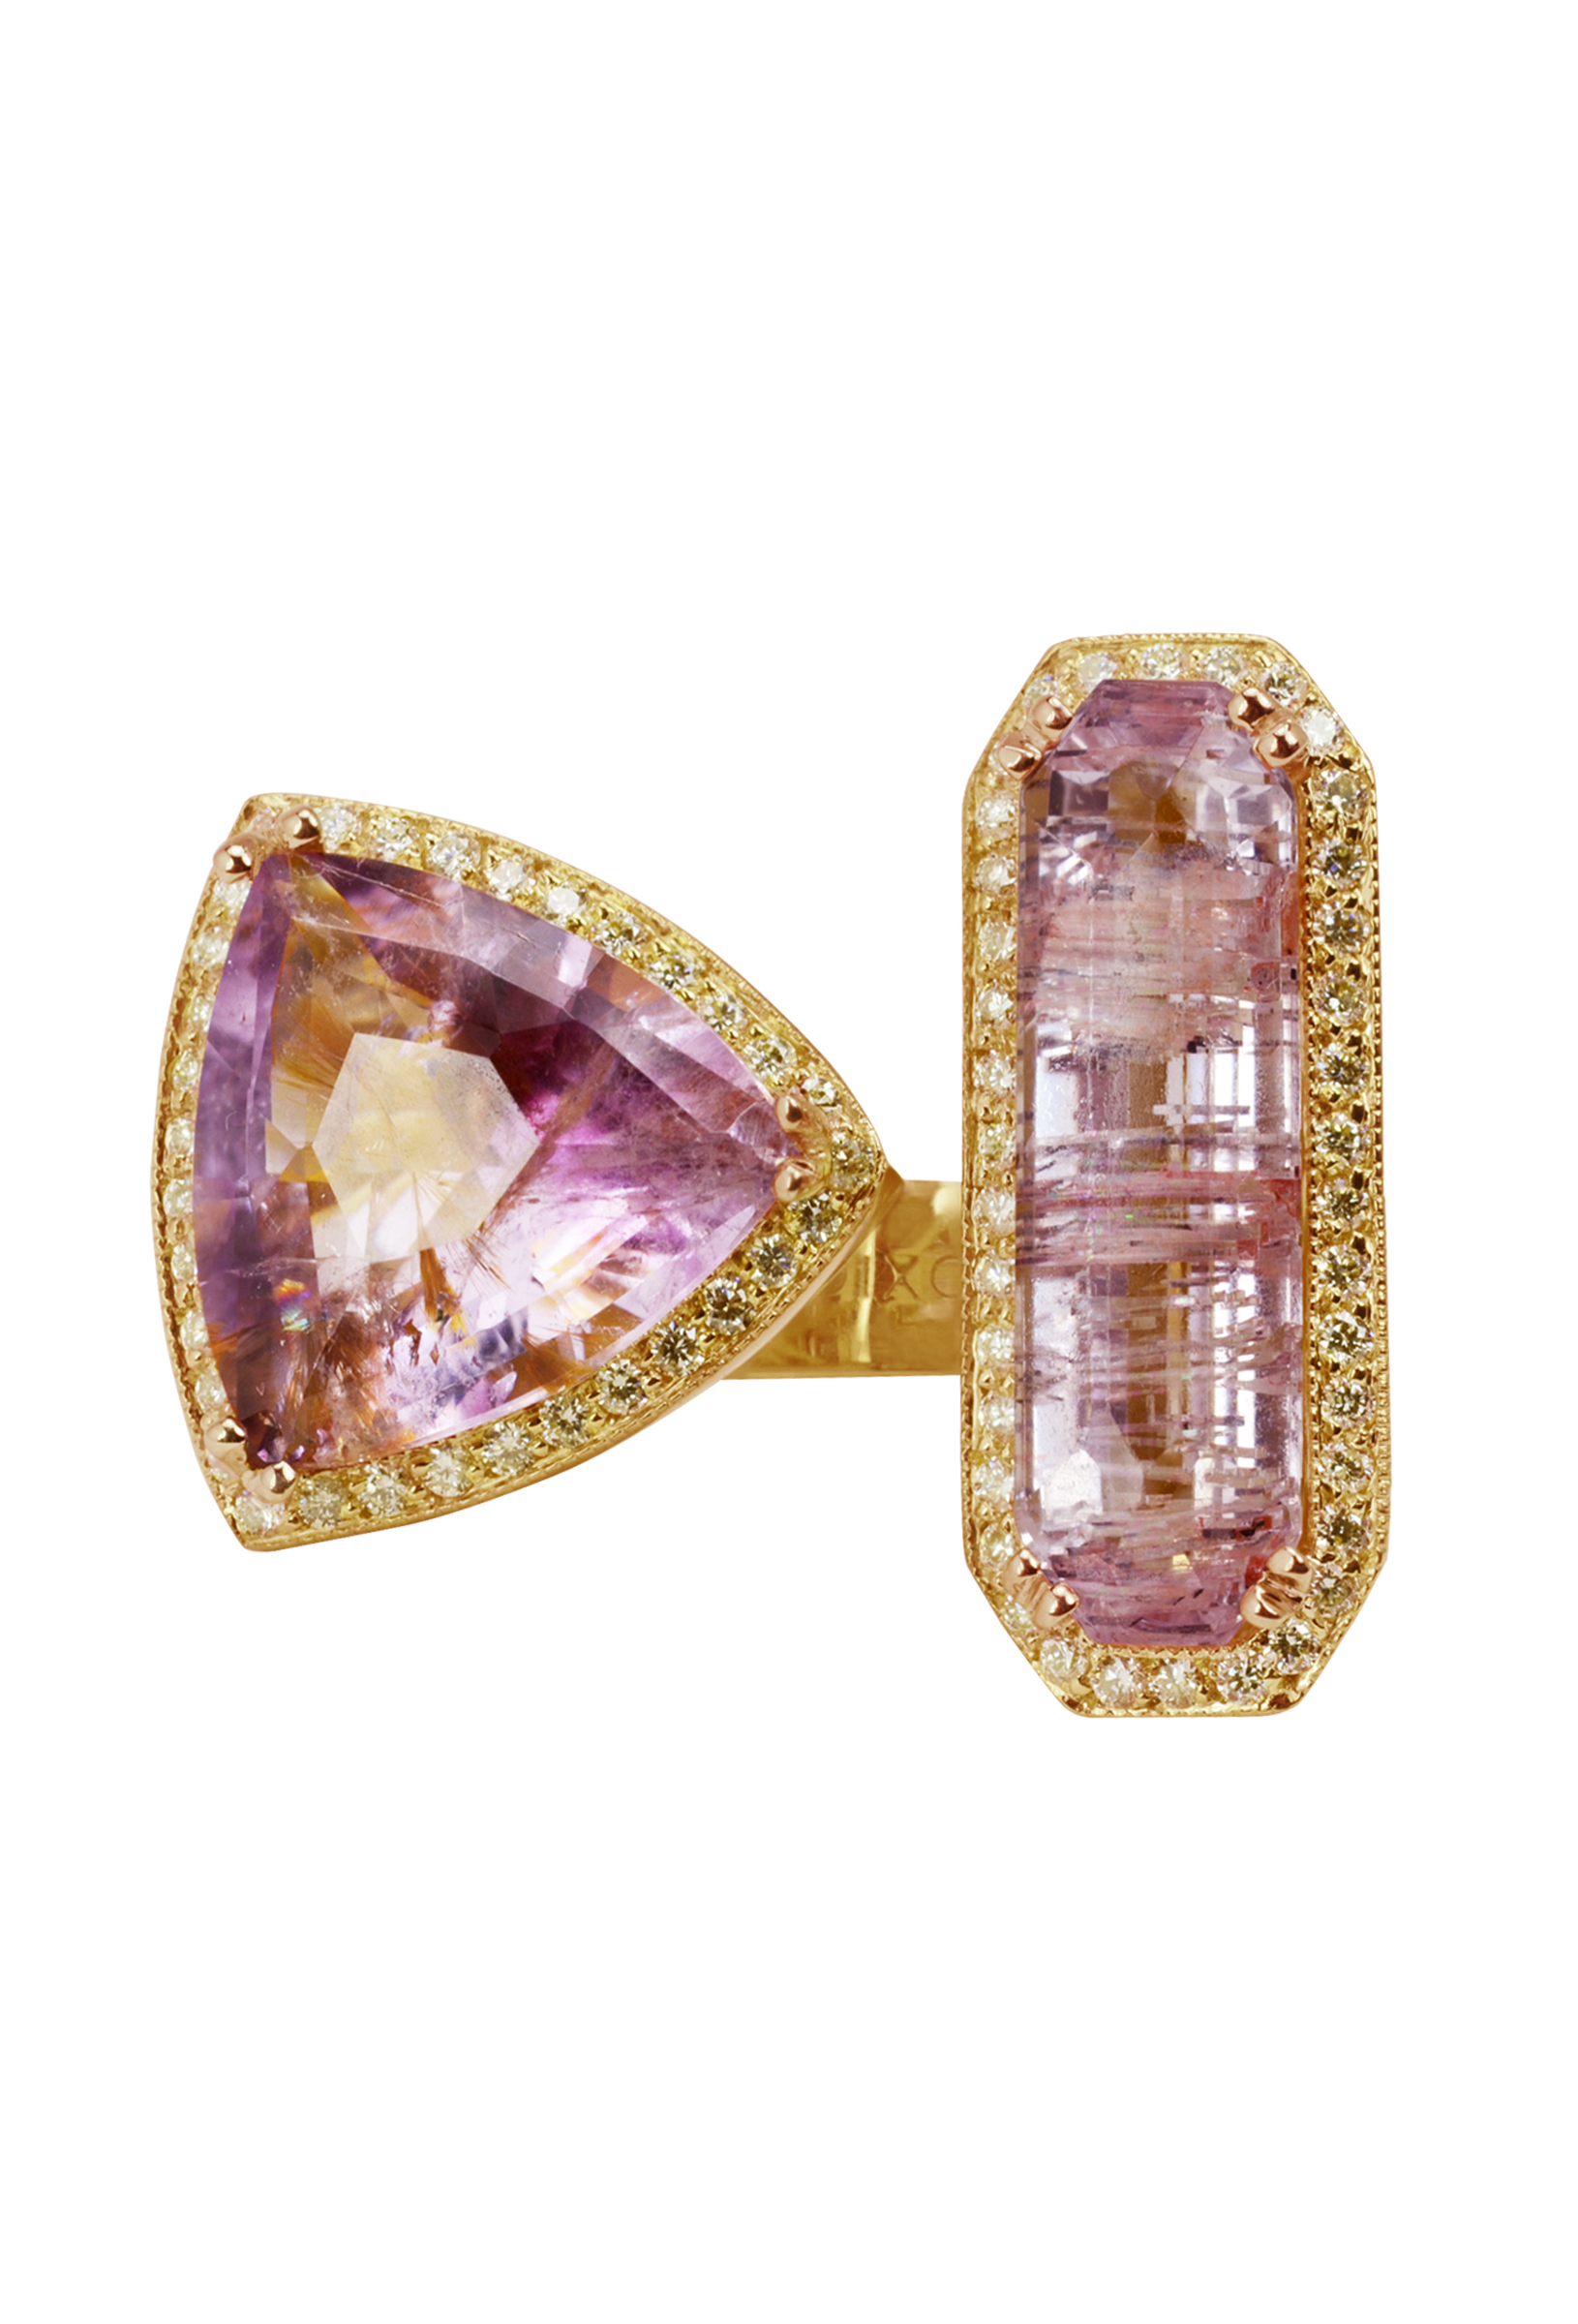 Amethyst Goethite & Rutilated Pink Kunzite Split Ring